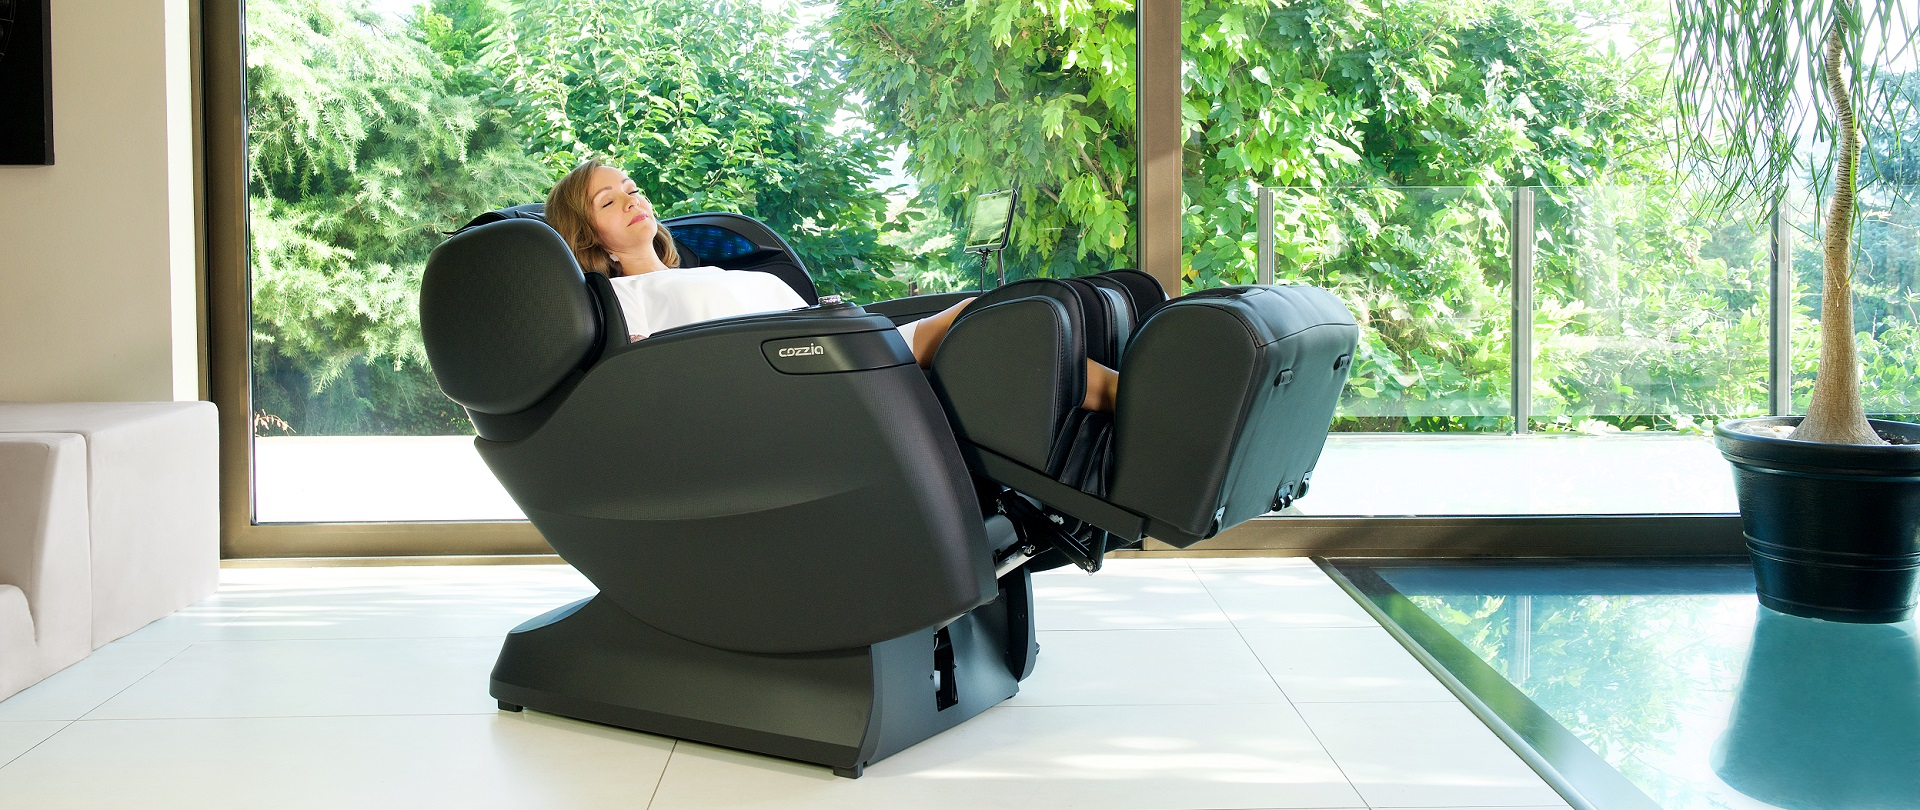 Contact us - massage chair showroom